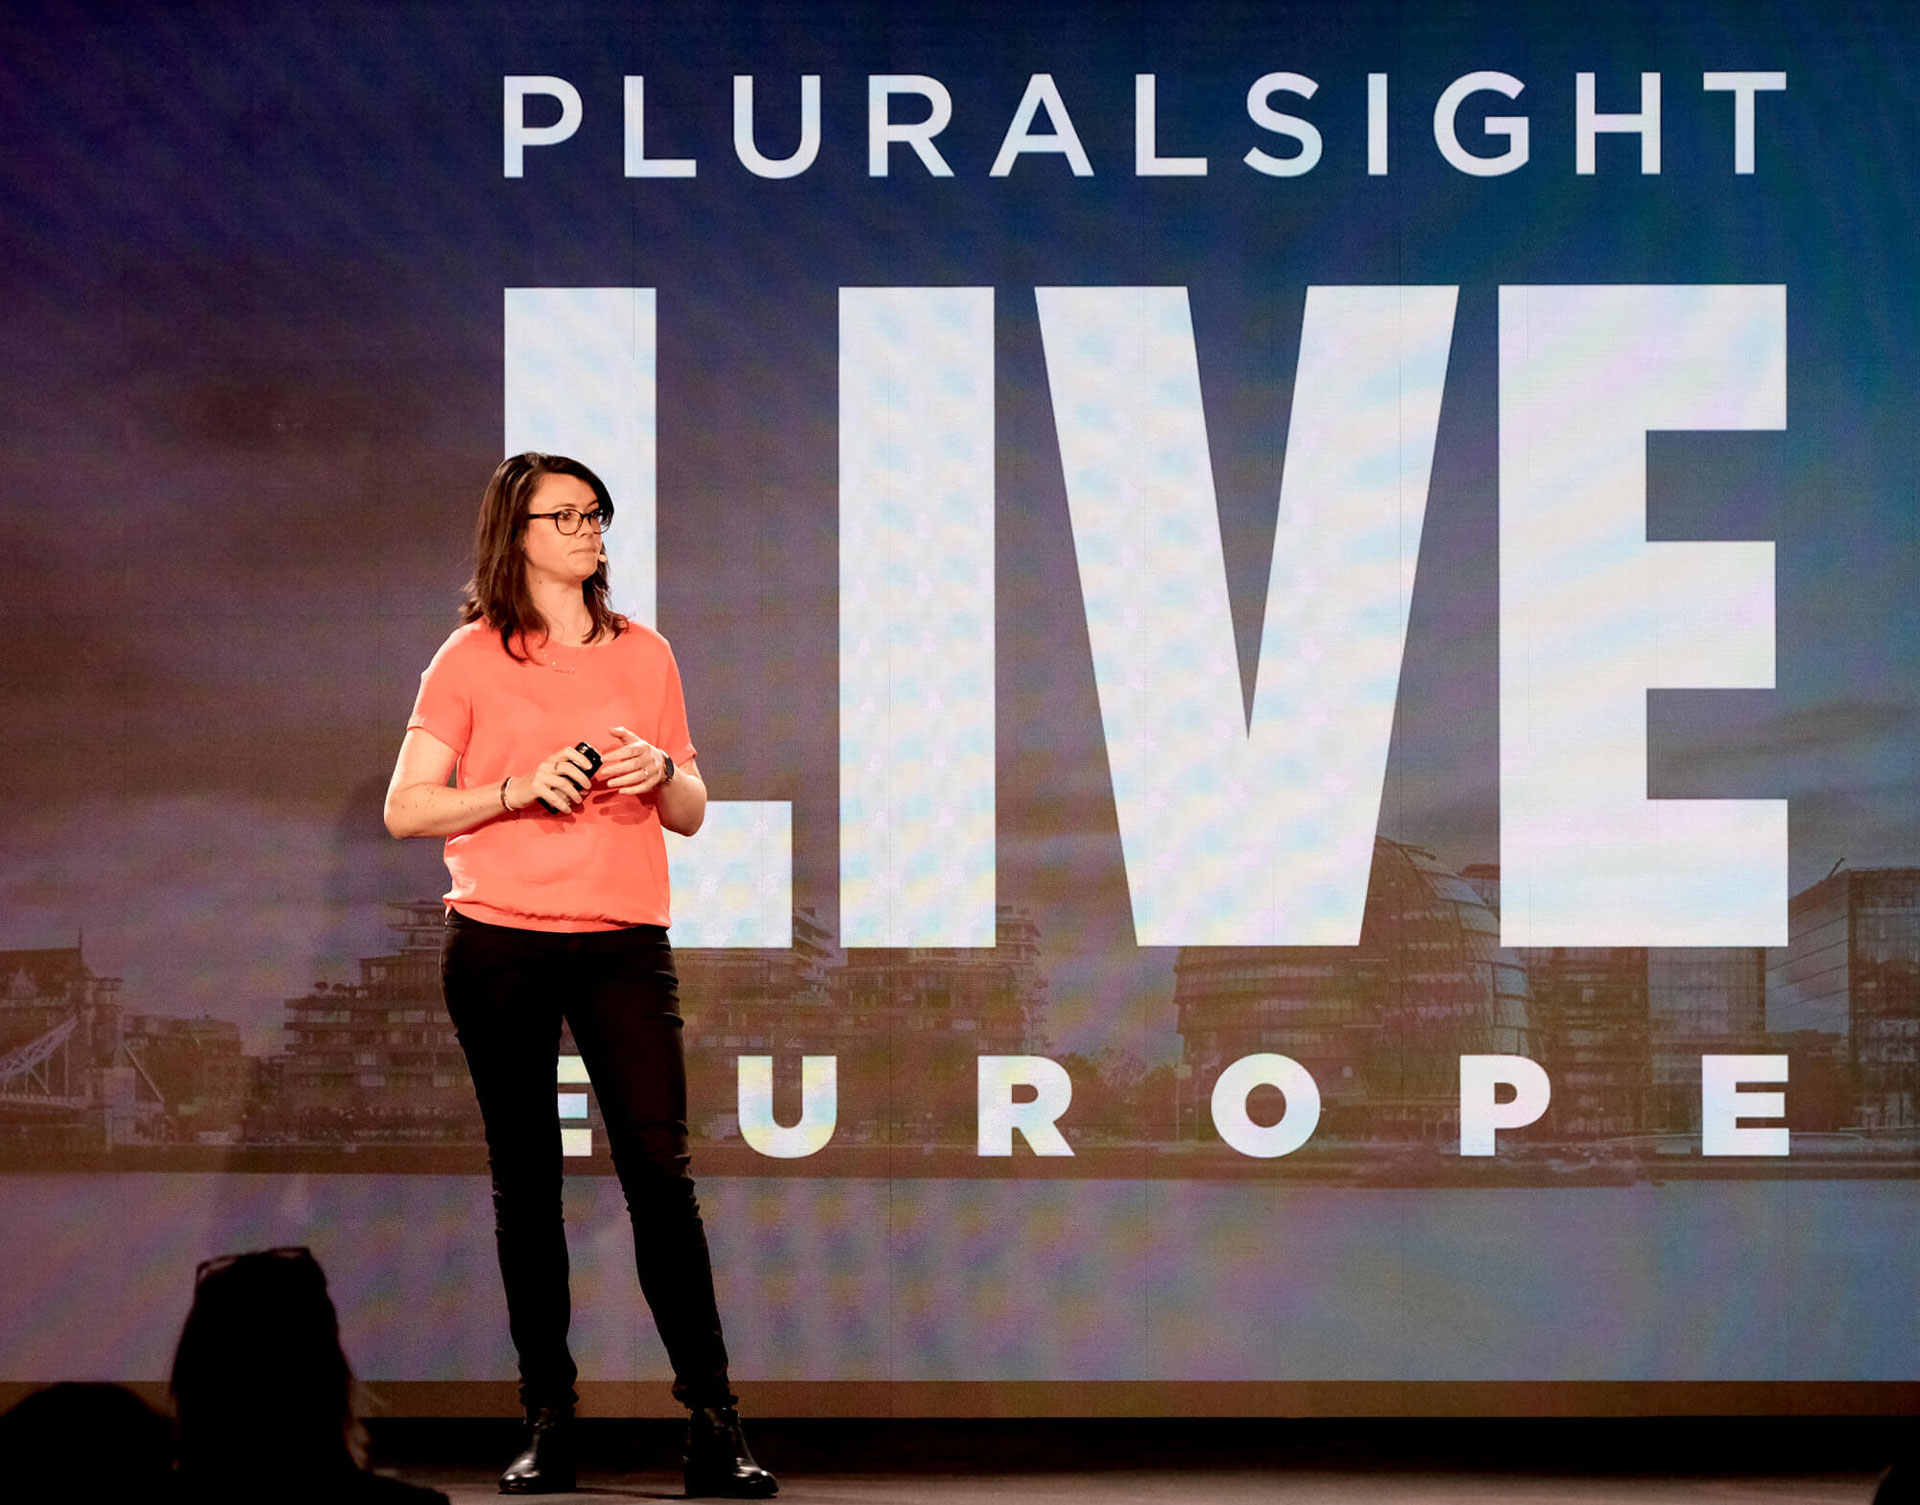 Pluralsight sets technology conference gender balance bar high